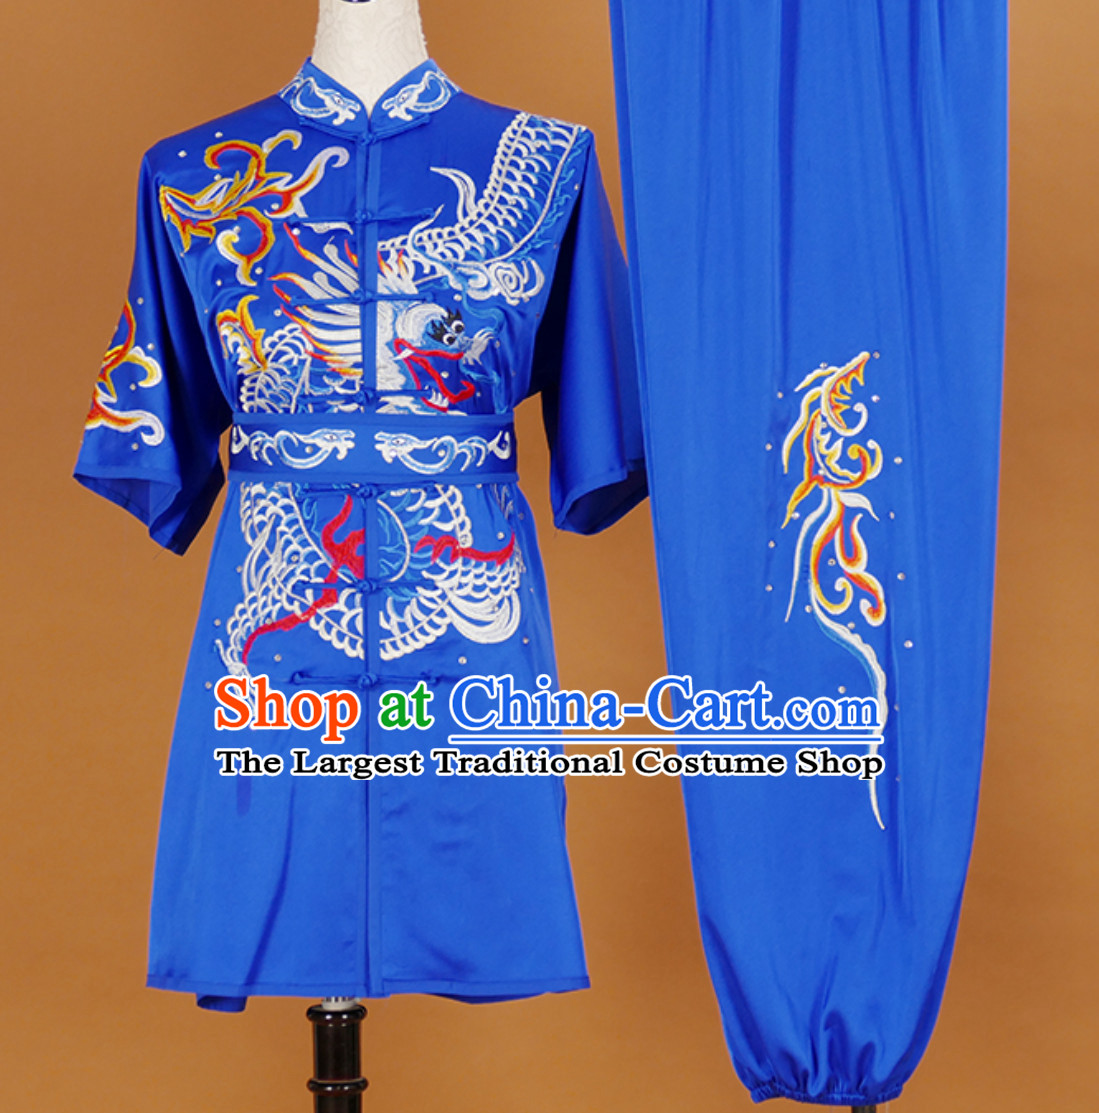 Blue Short Sleeves Martial Arts Suit Kung Fu Dress Wushu Suits Stage Performance Competition Full Set